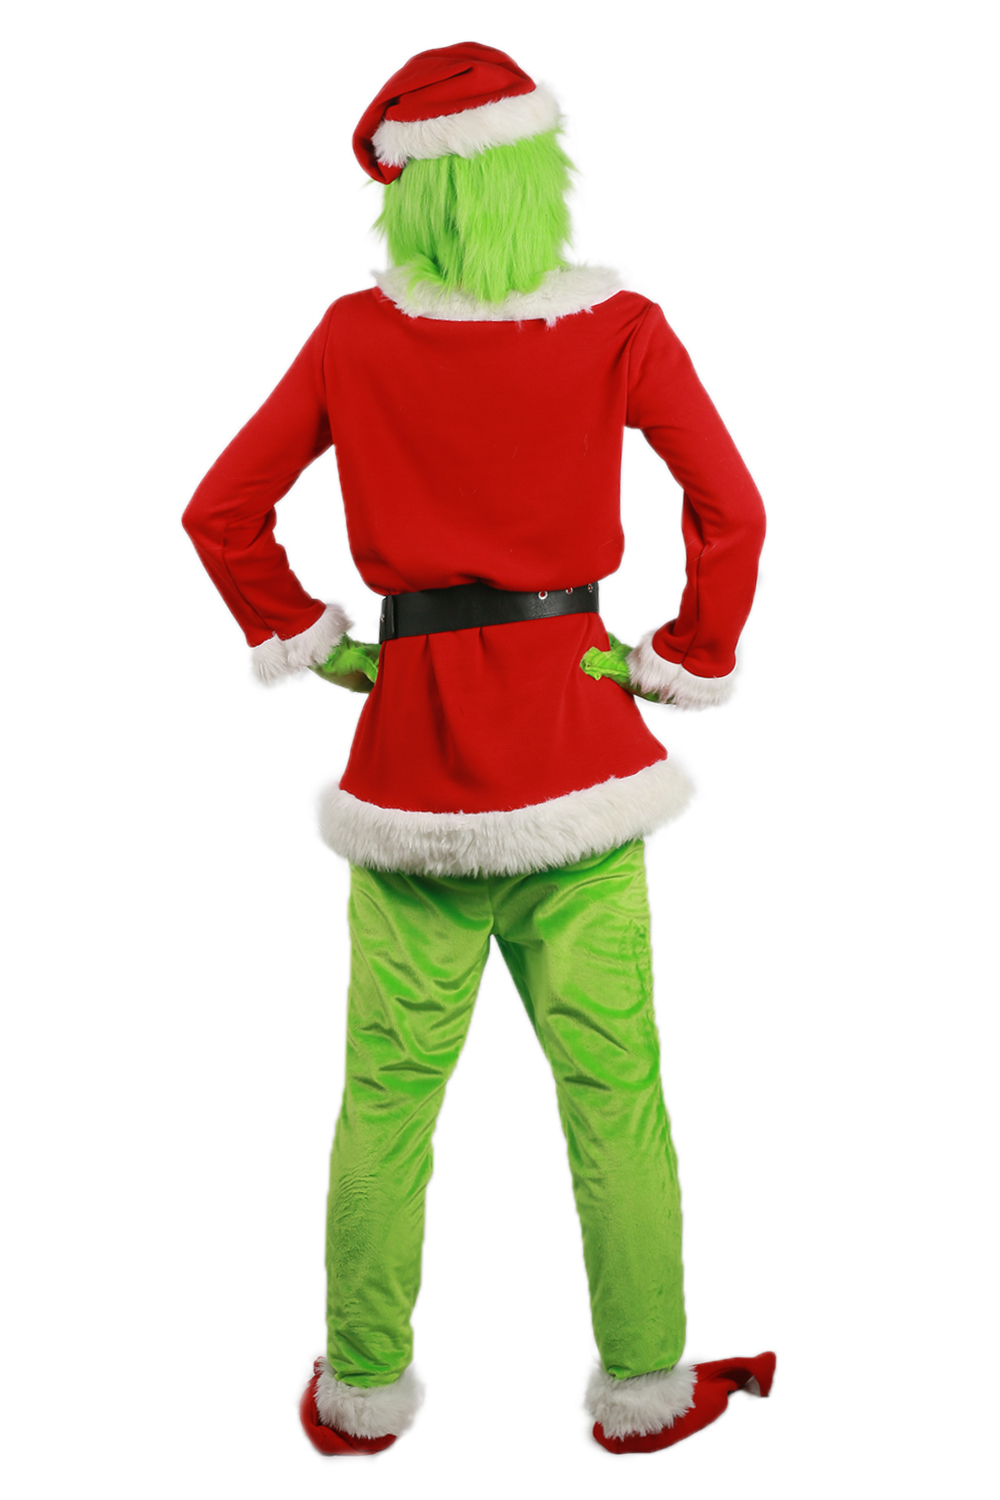 grinch costume movie how the grinch stole christmas cosplay outfit full set fancy dress for adults moviemovie how the grinch stole christmas